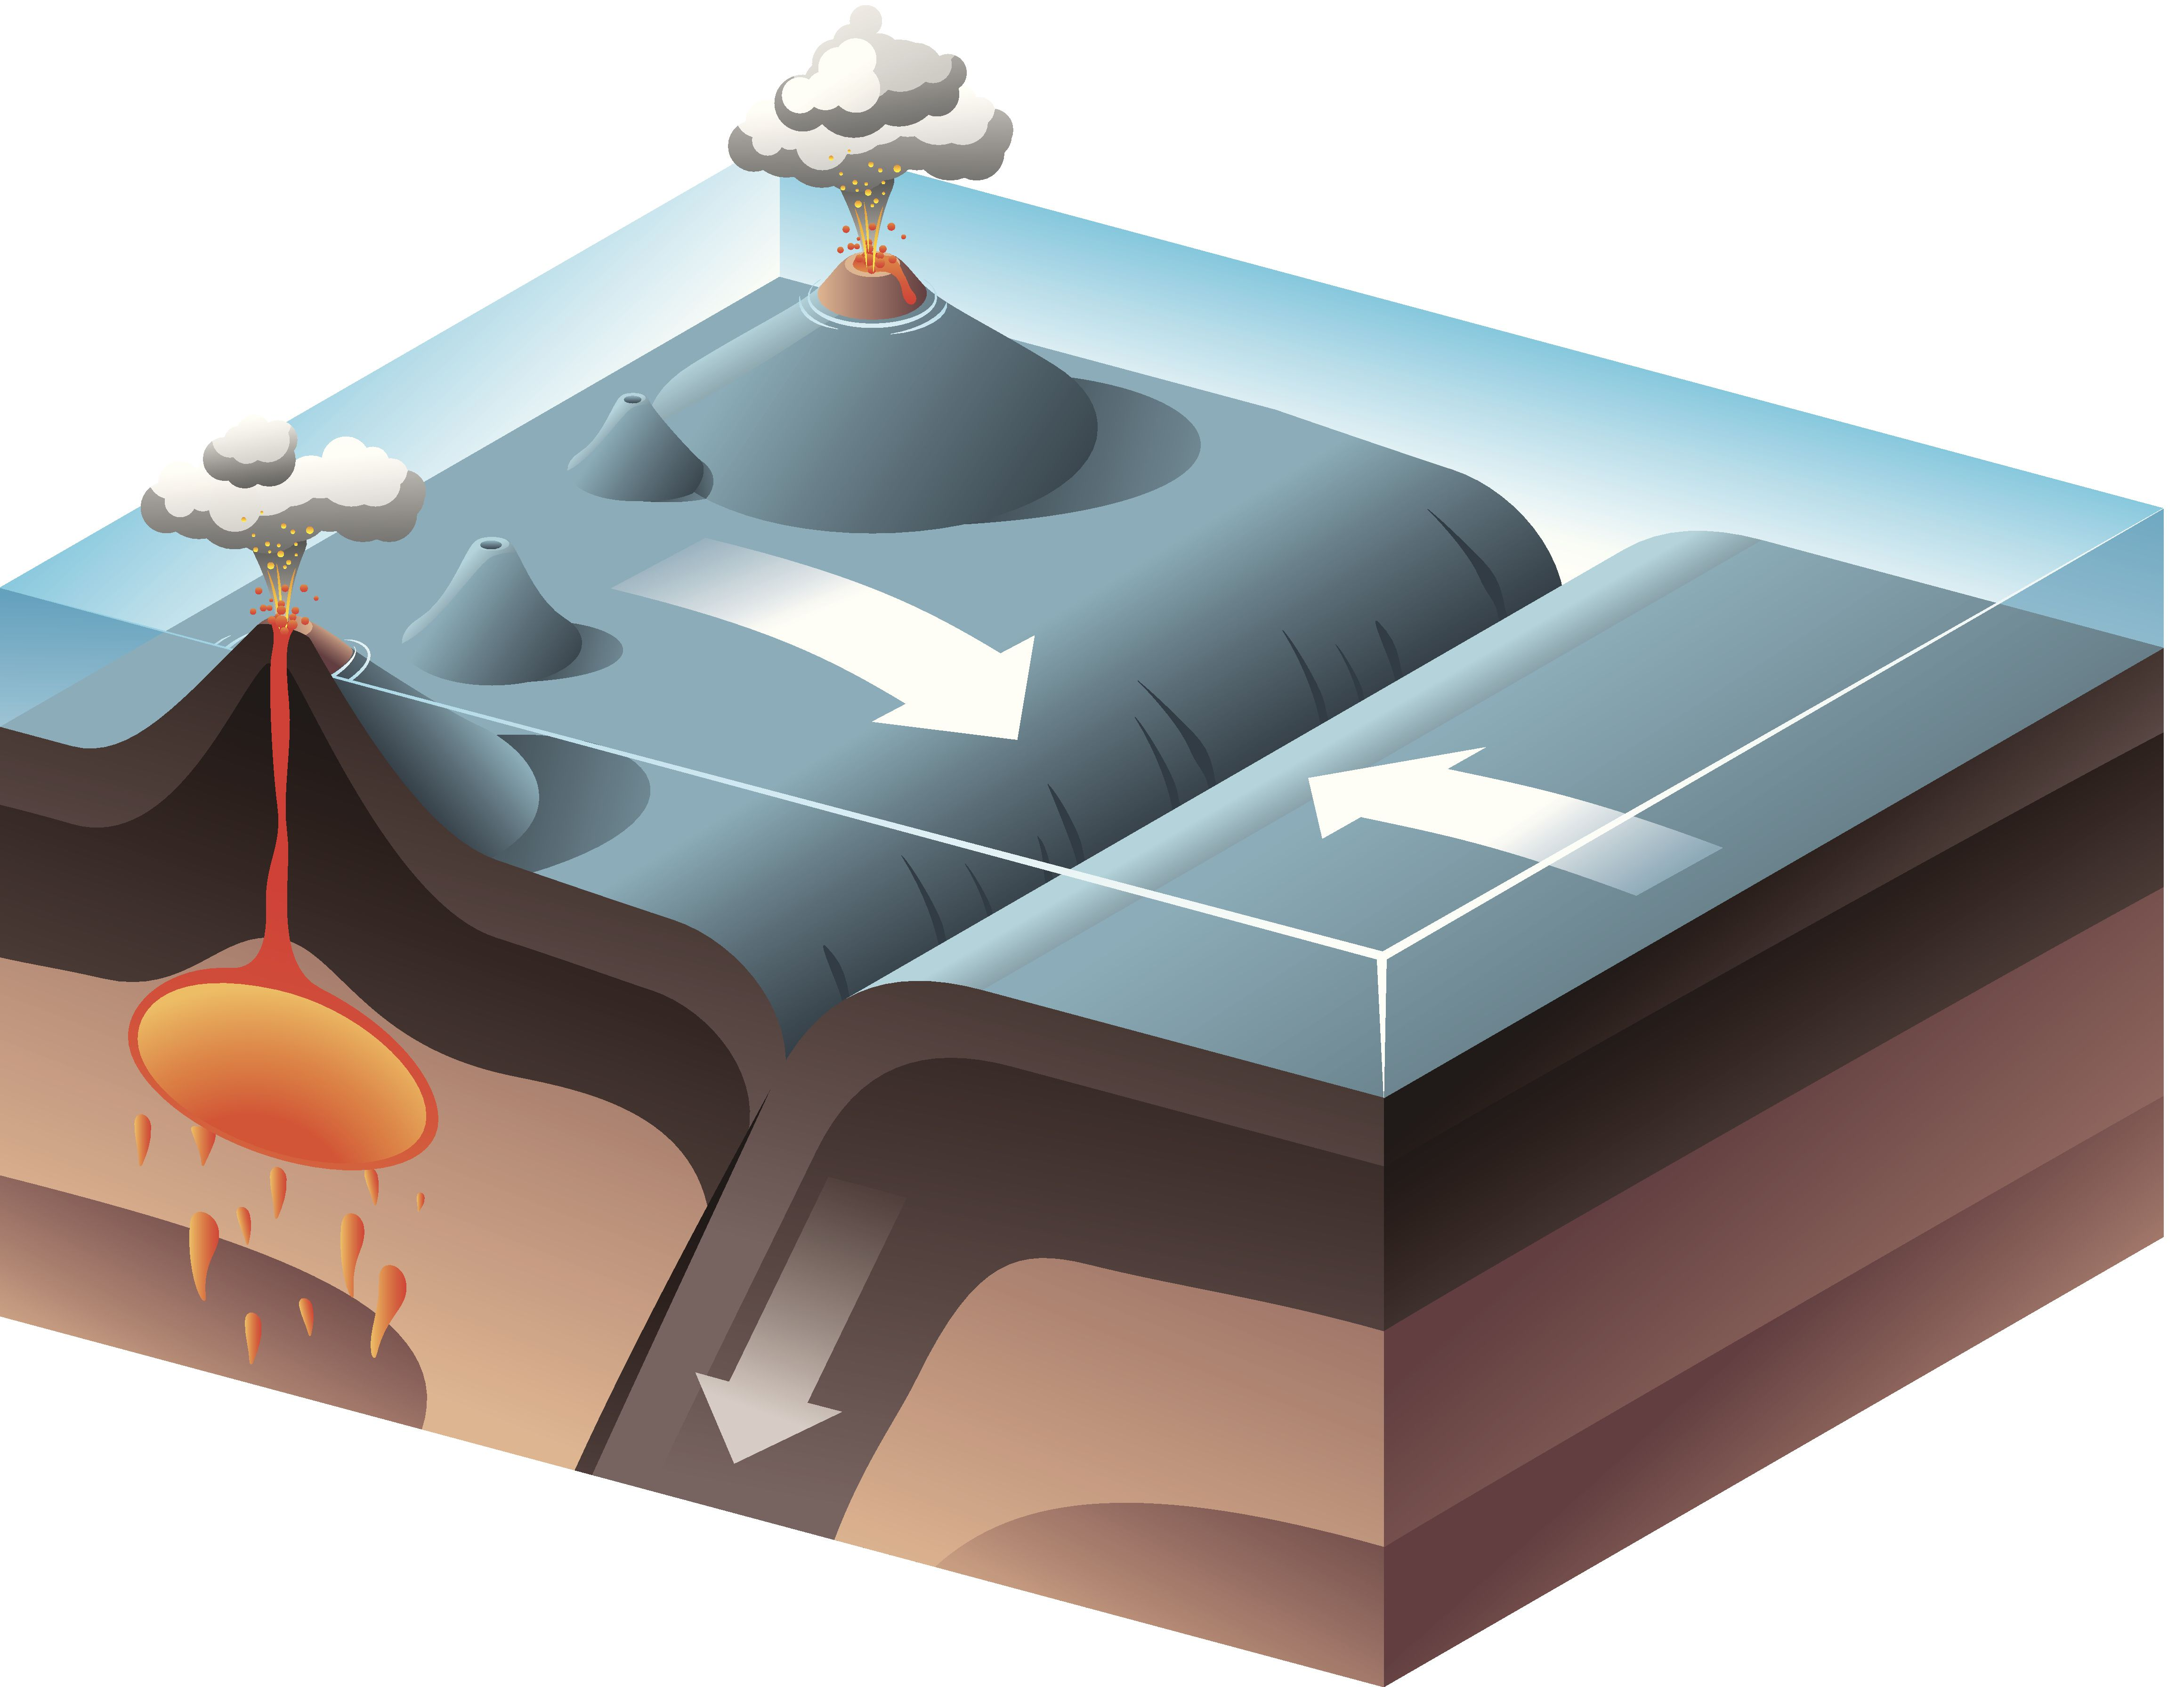 Subduction occurs when two convergent tectonic plates collide with each other.